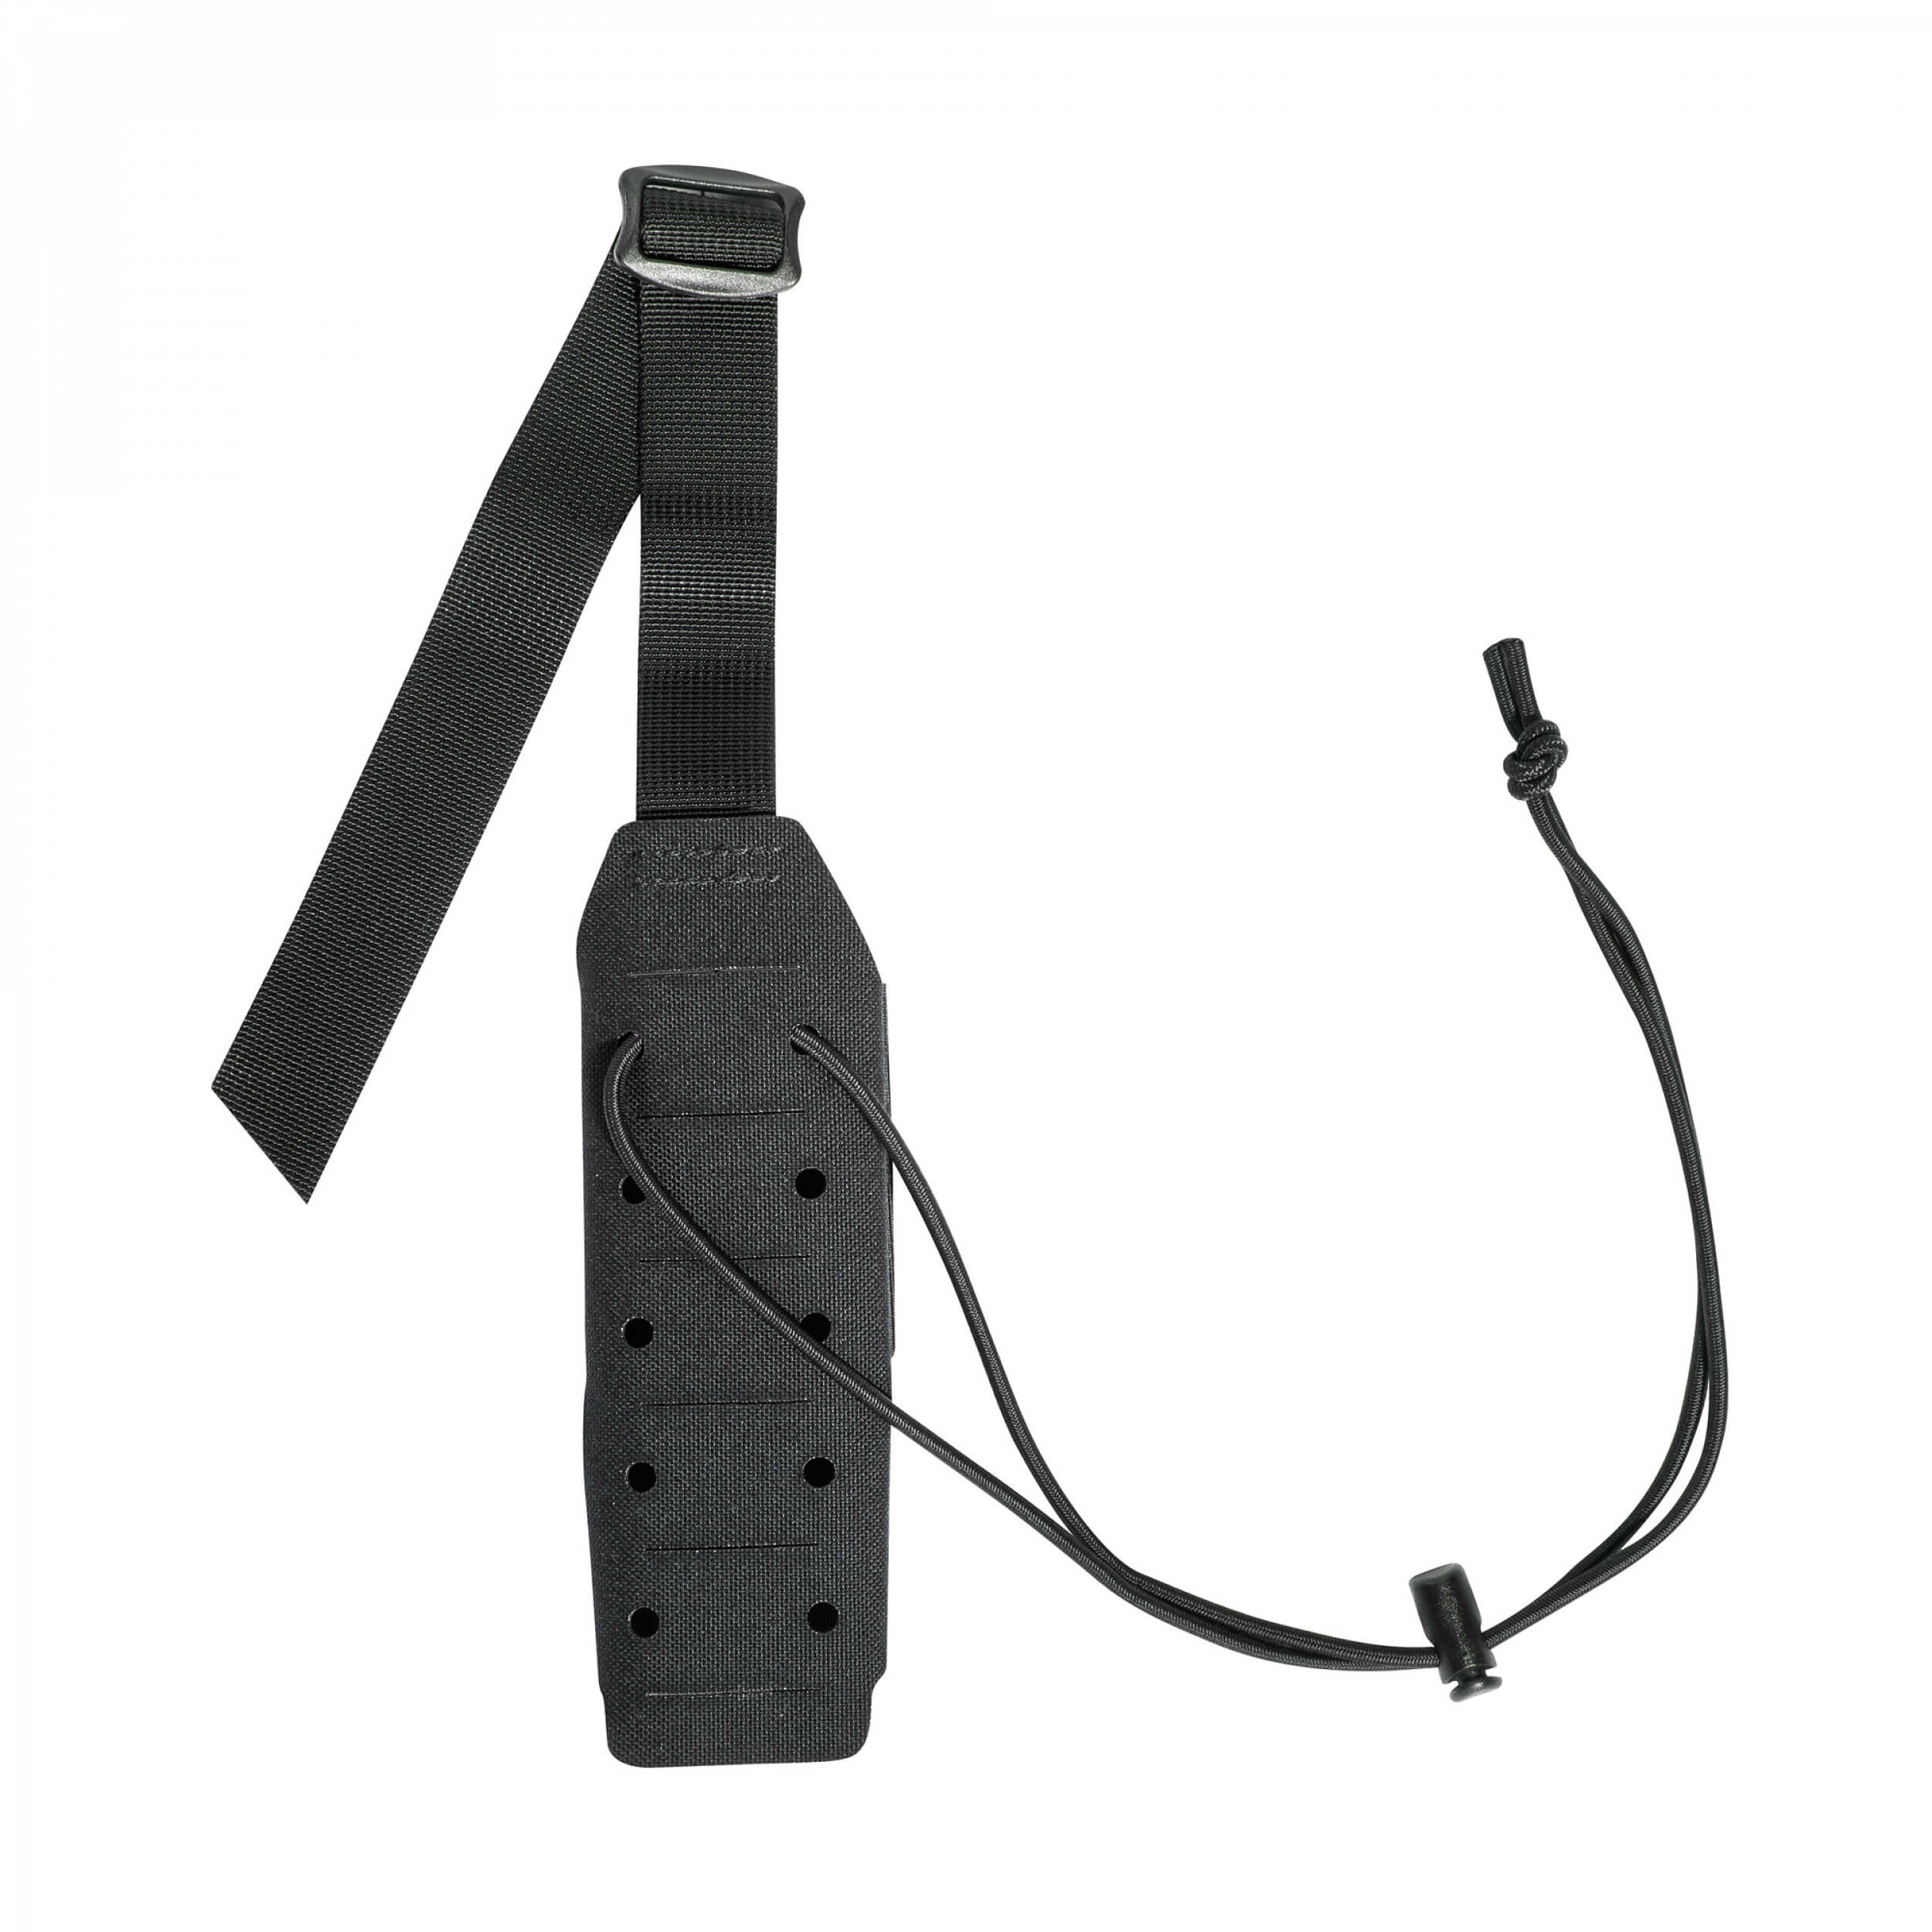 Tasmanian Tiger Harness Molle Adapter black